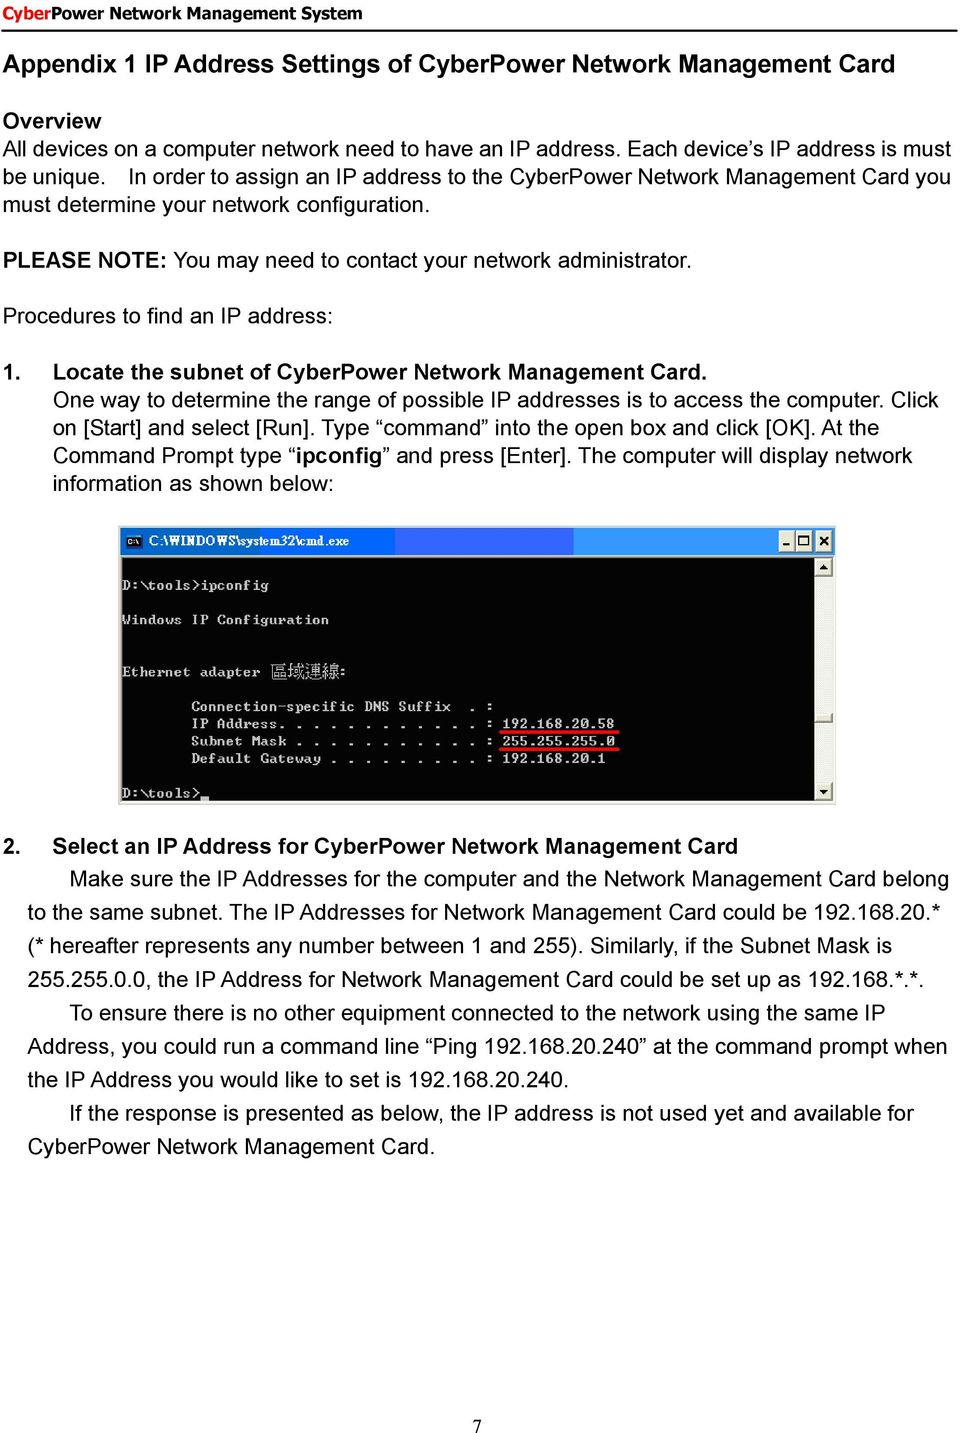 Procedures to find an IP address: 1. Locate the subnet of CyberPower Network Management Card. One way to determine the range of possible IP addresses is to access the computer.